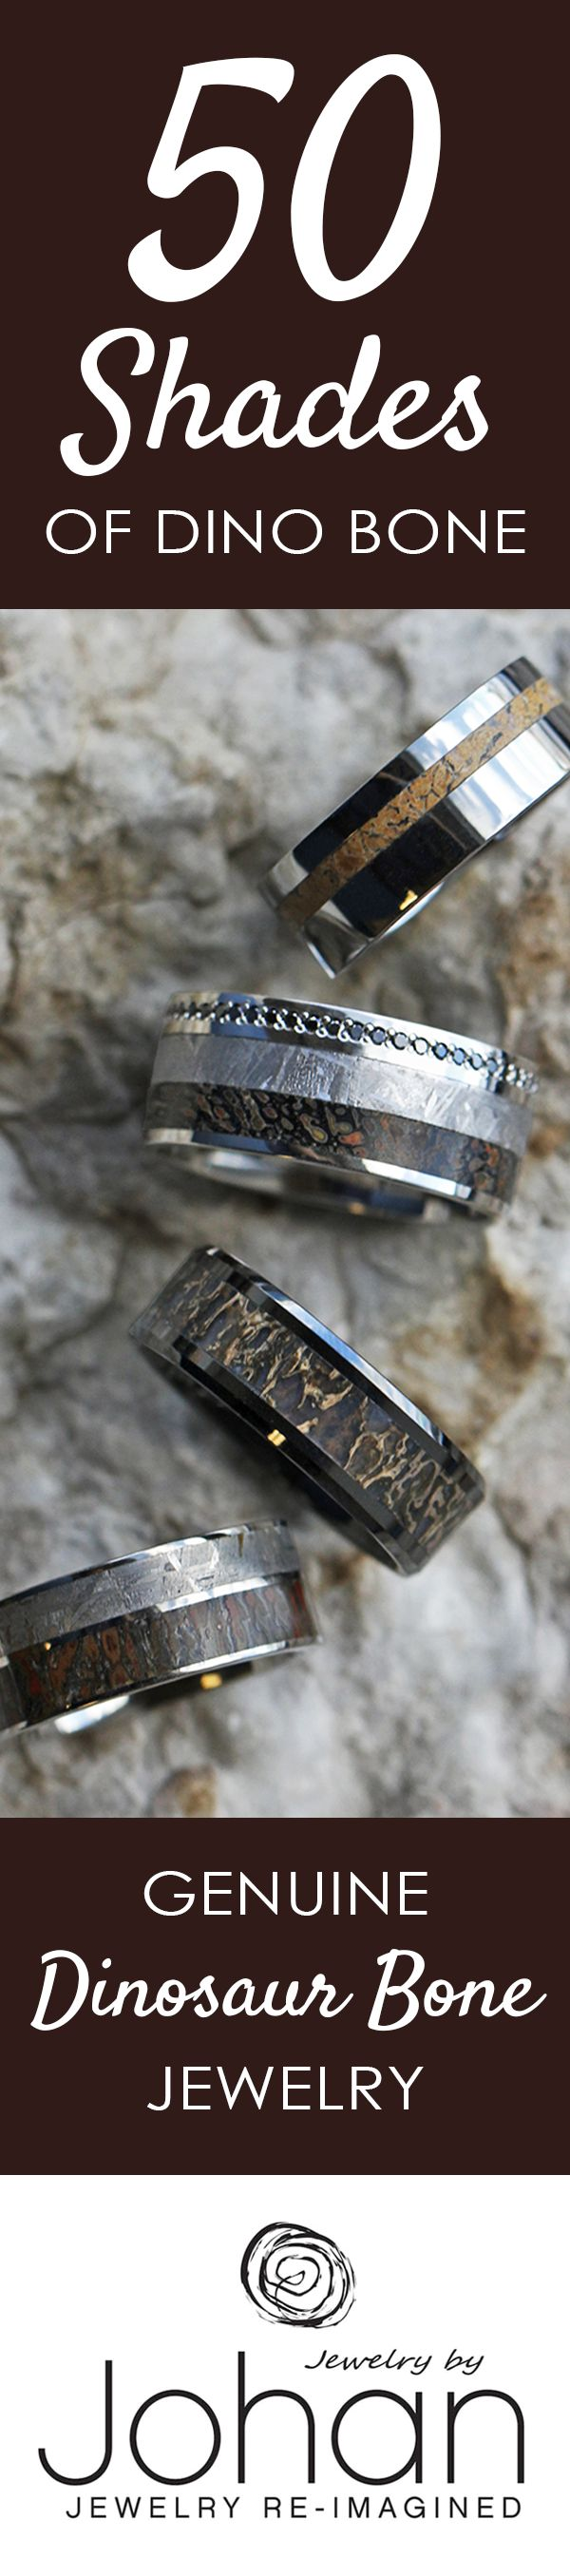 dino bone rings dinosaur wedding band We place 65 million year old gembone into our handmade unique wedding bands and engagement